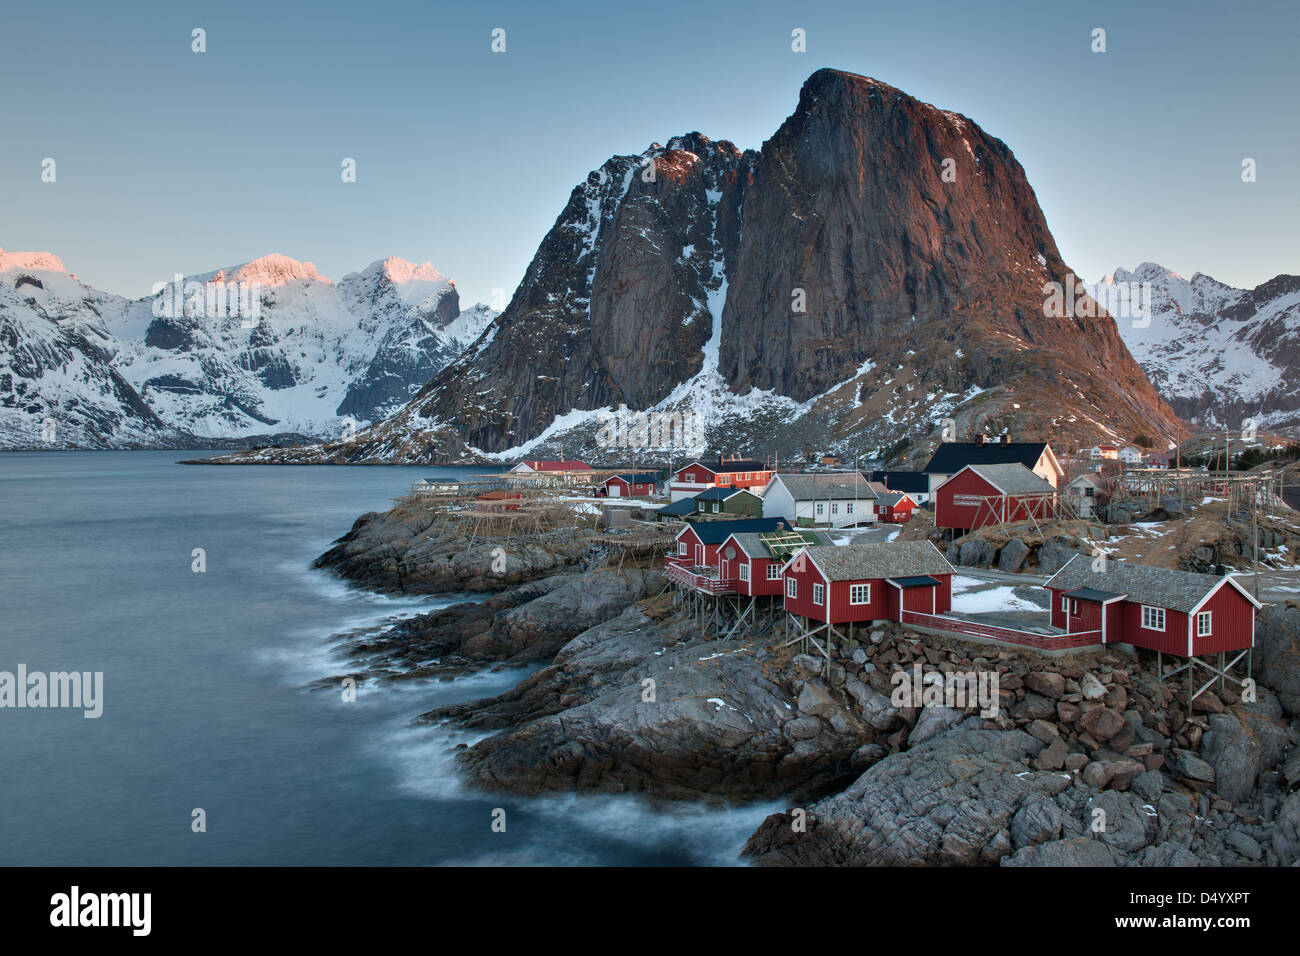 Village de pêcheurs à distance de Hamnøy, Lofoten, Nordland, Norvège, Europe Photo Stock